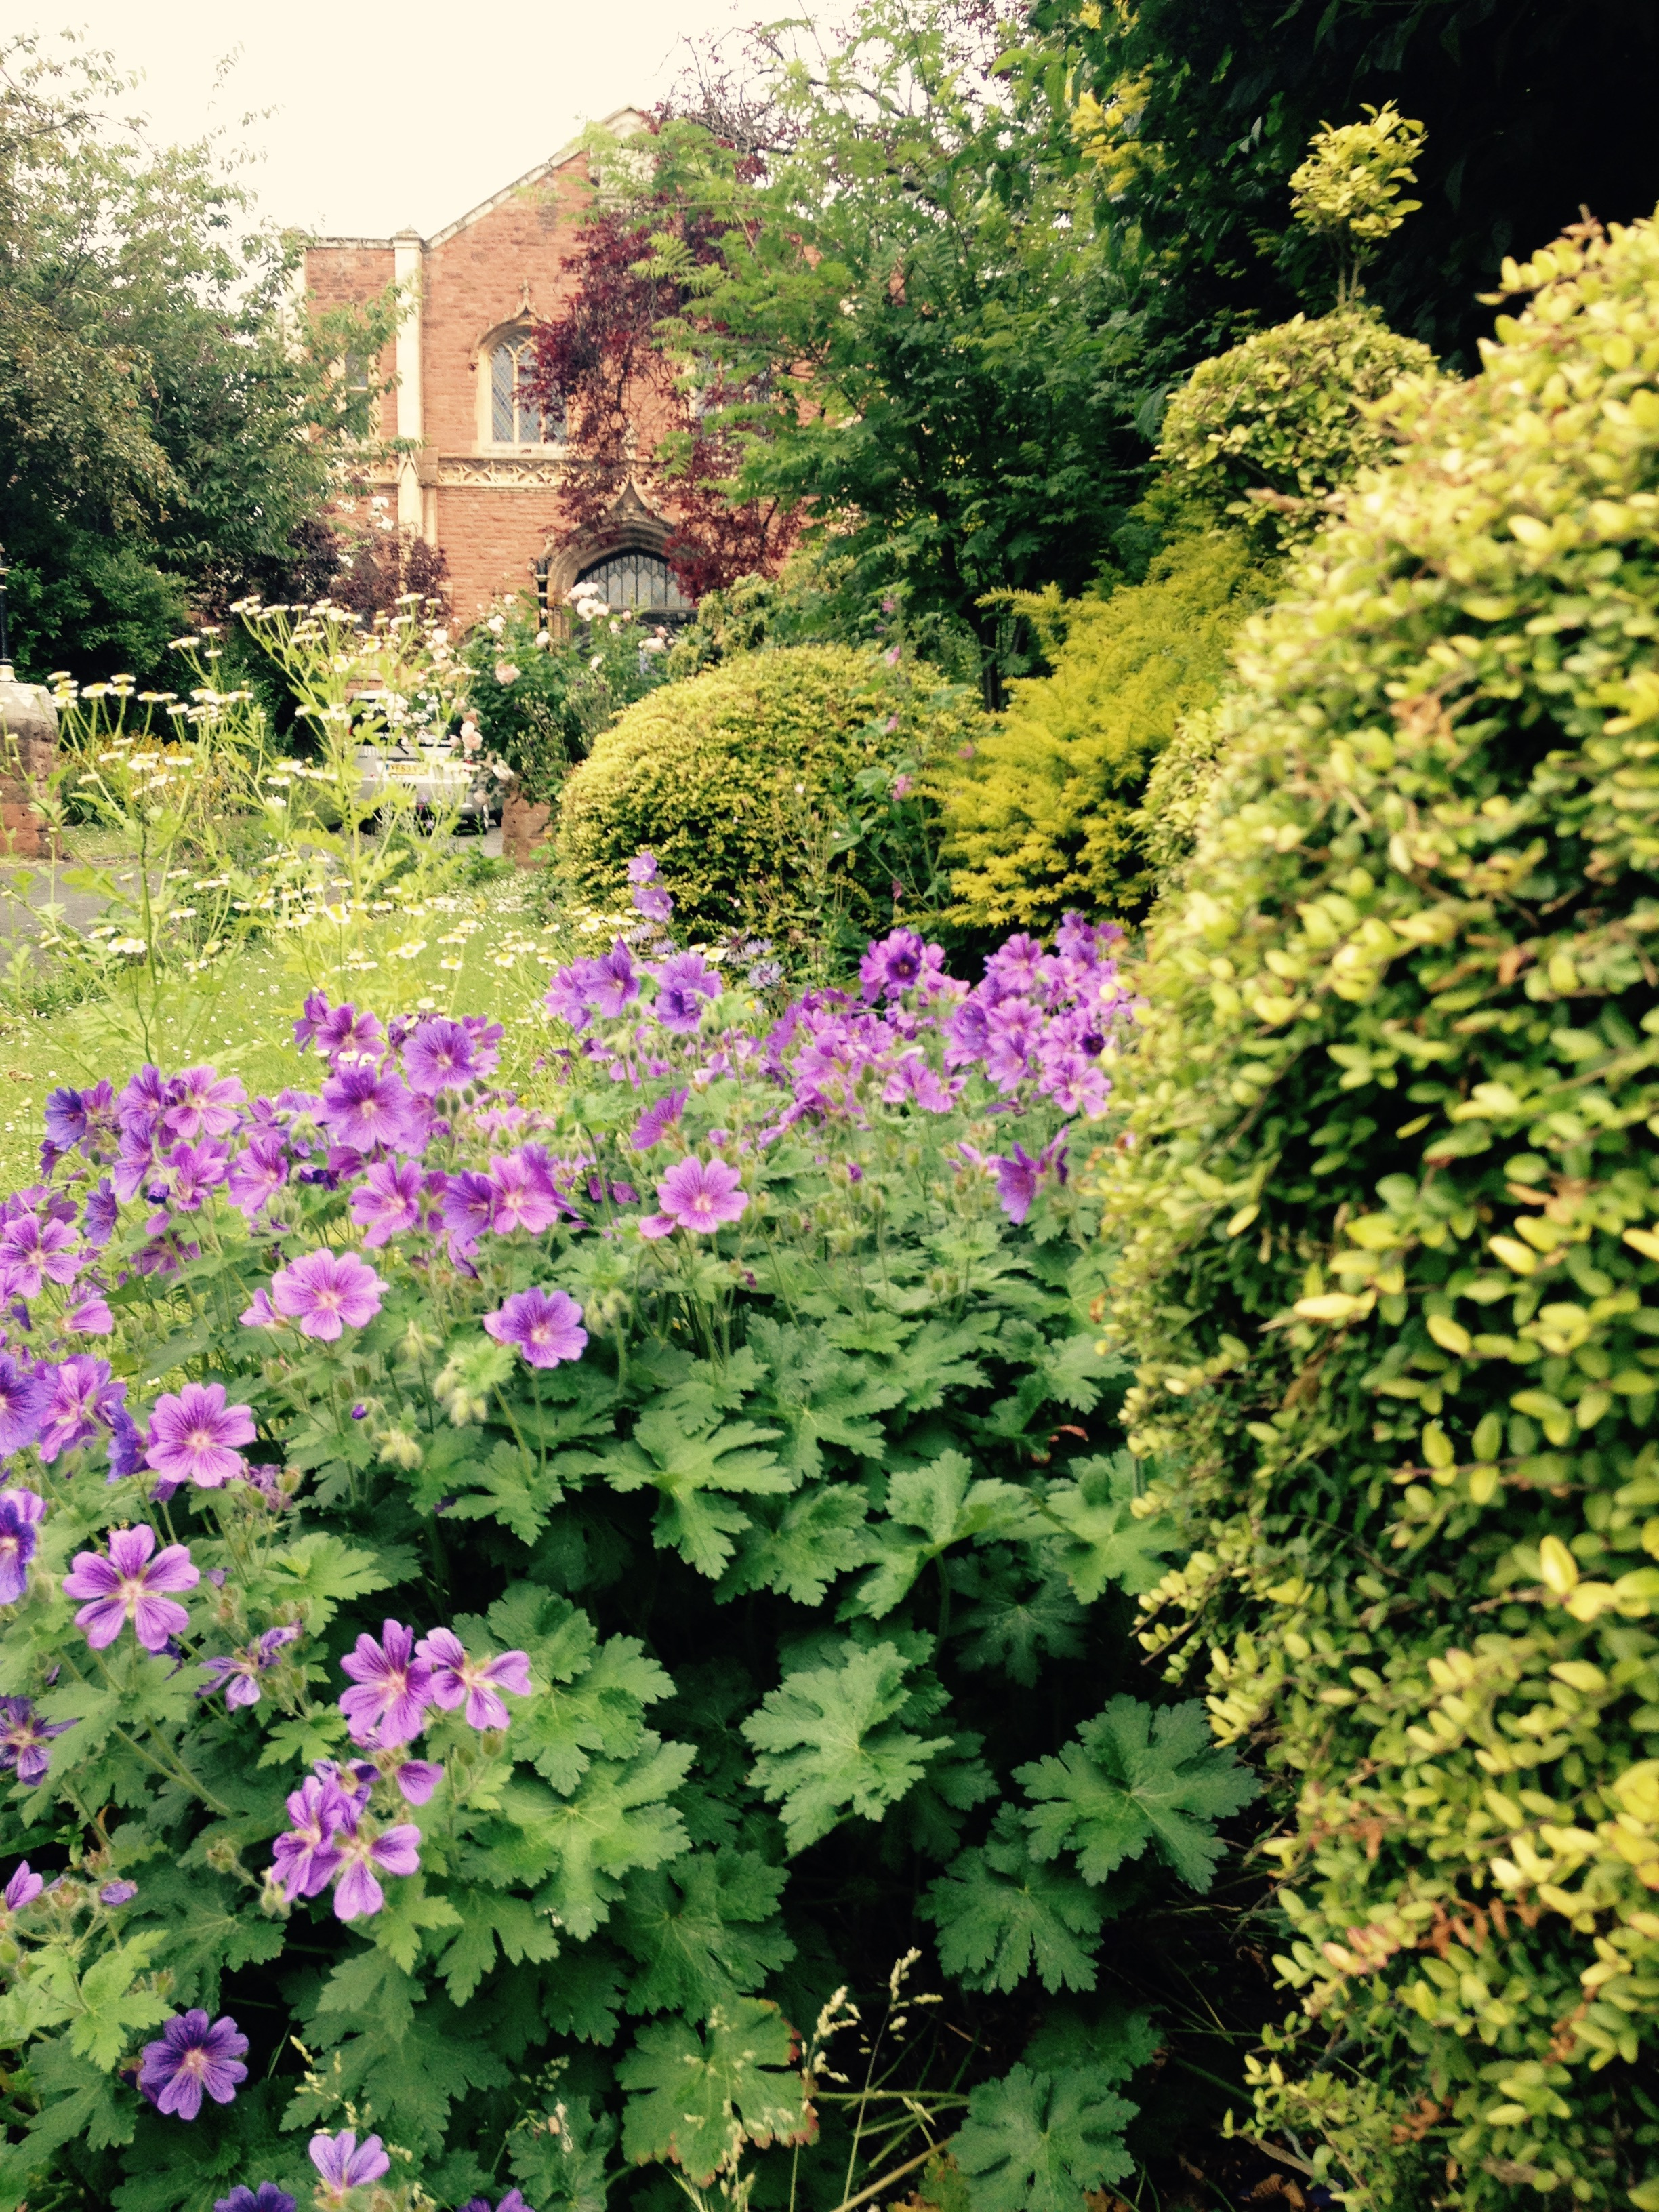 In front of the church is a floral peace garden which attracts a lot of wildlife